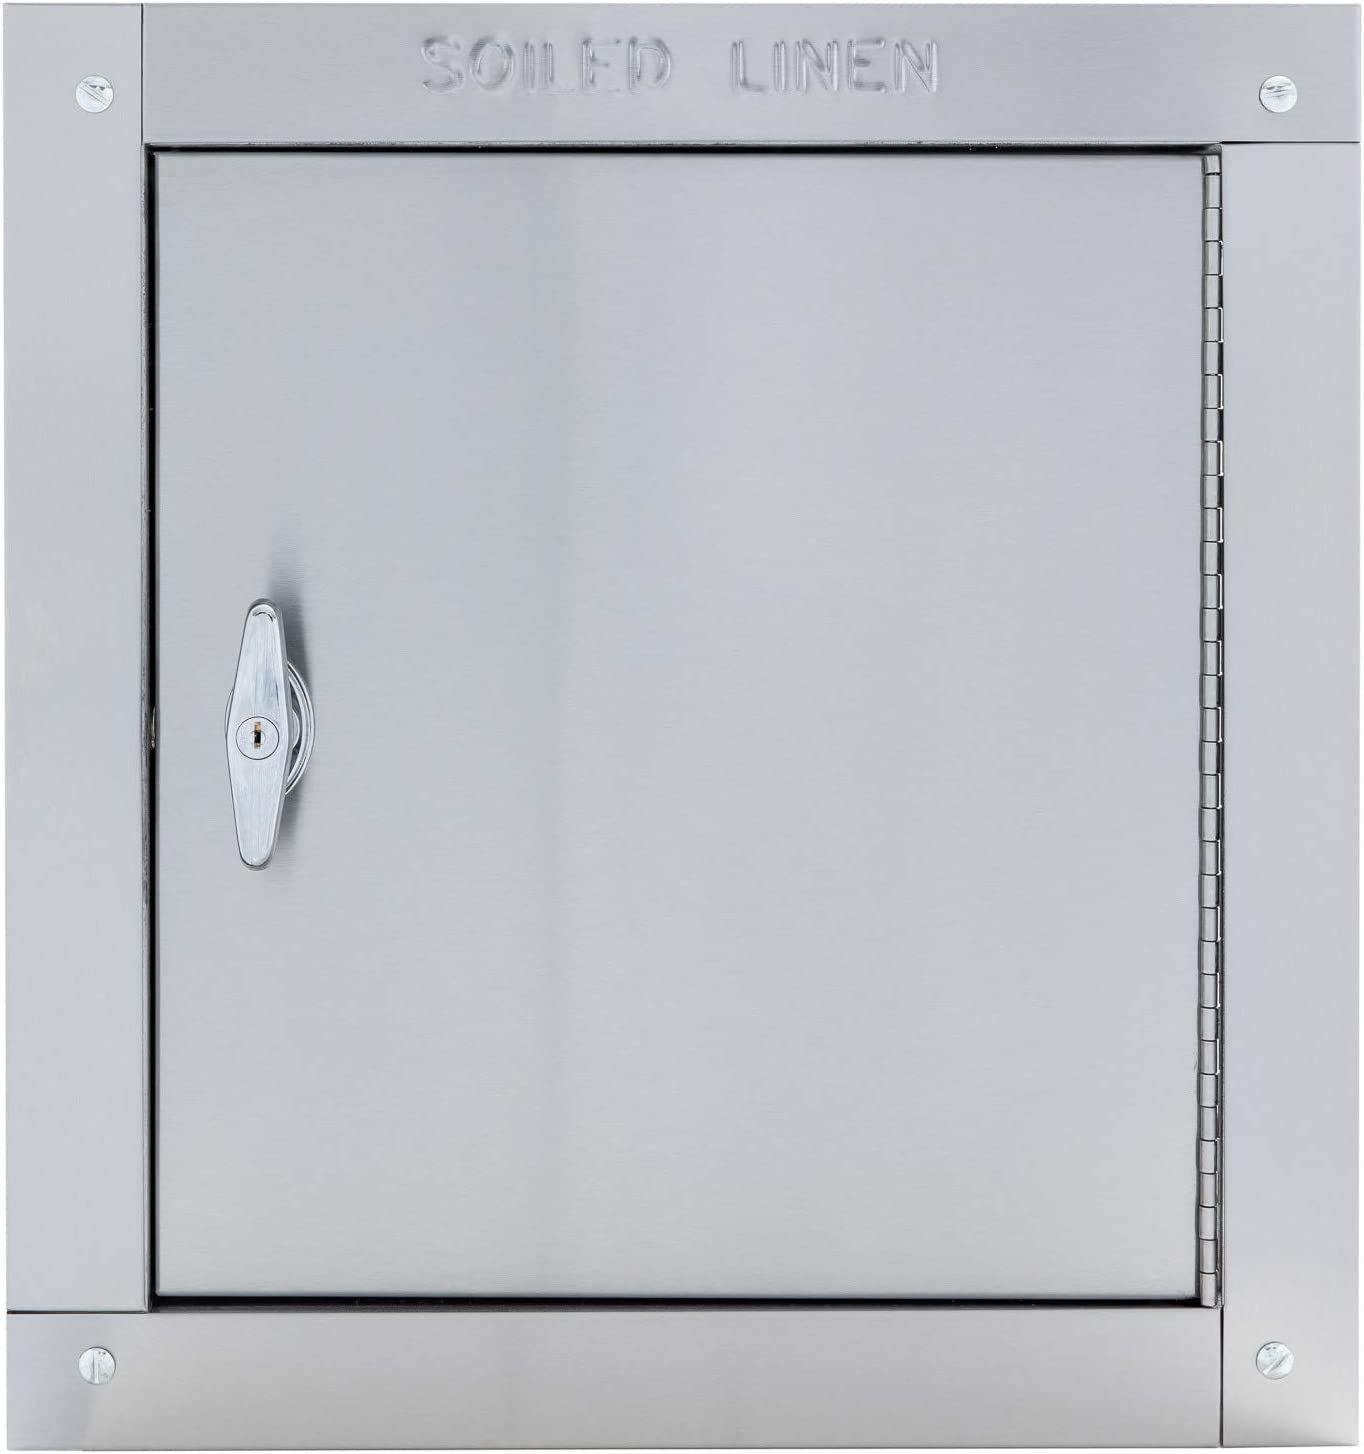 "Universal Stainless Steel Linen Chute Door - Noiseless Self Closing Side Hinged Fire Rated & UL Approved (18"" X 18"")"